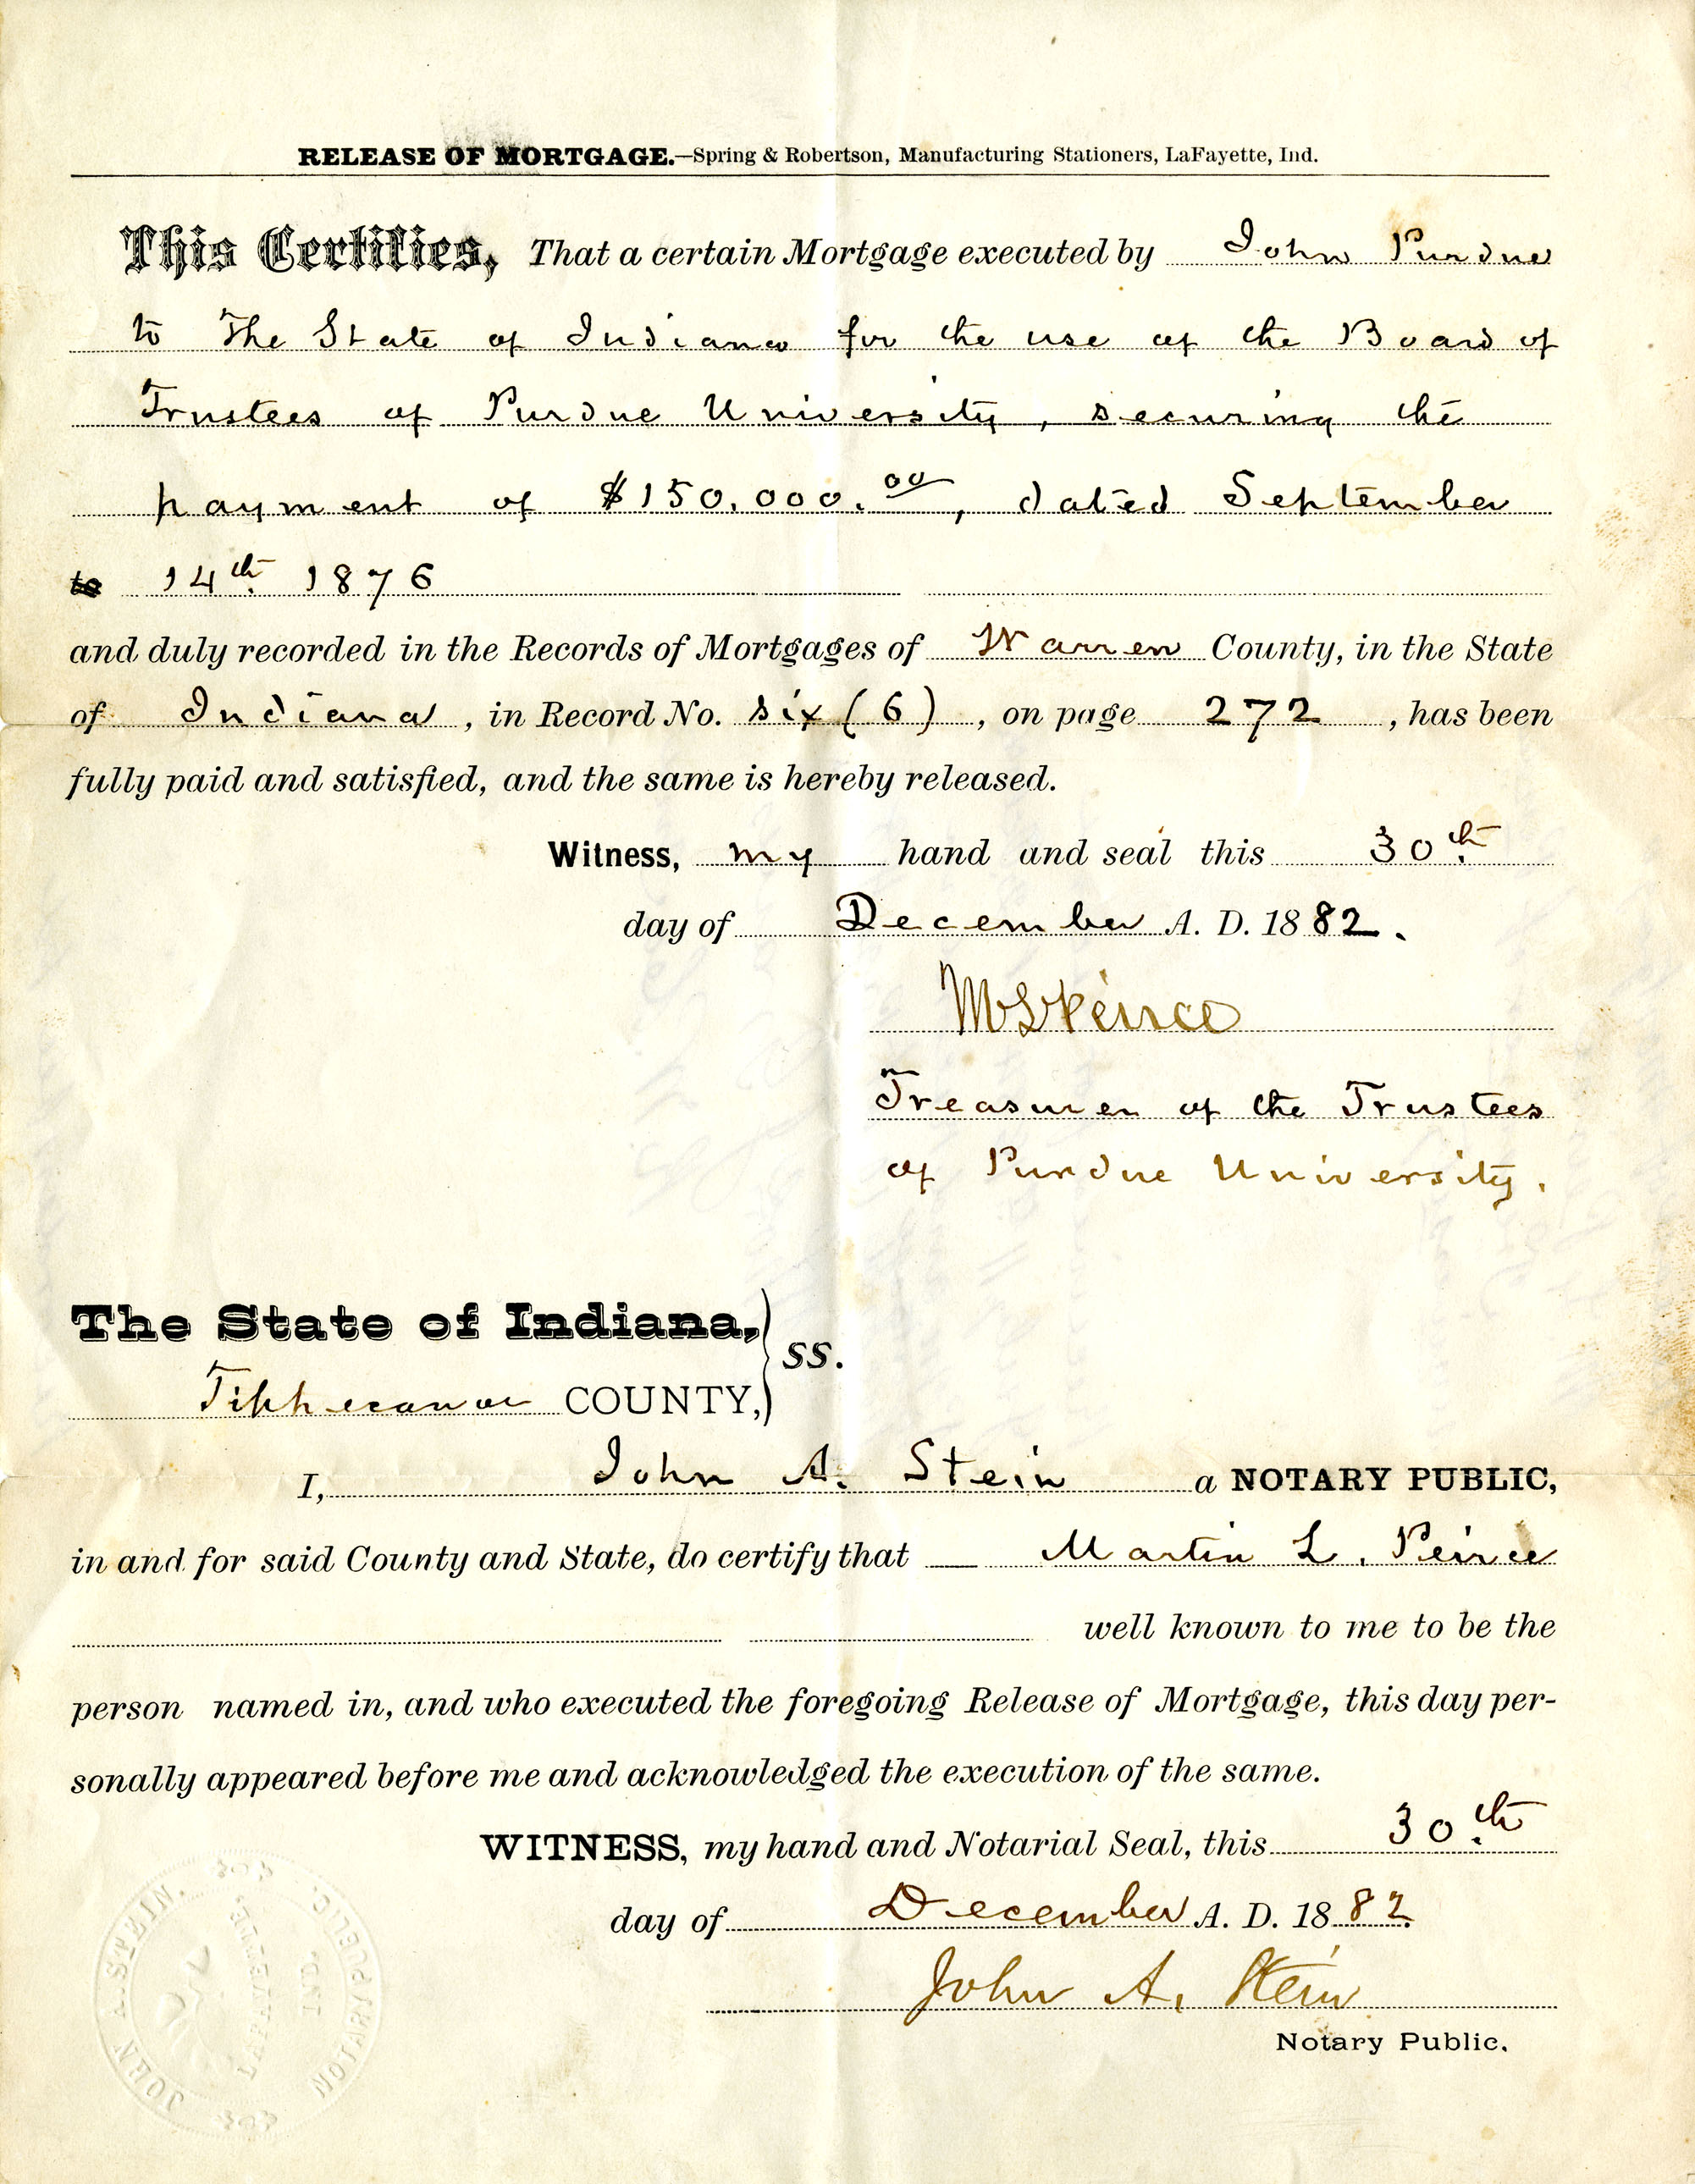 John Purdue document to be presented during pep rally